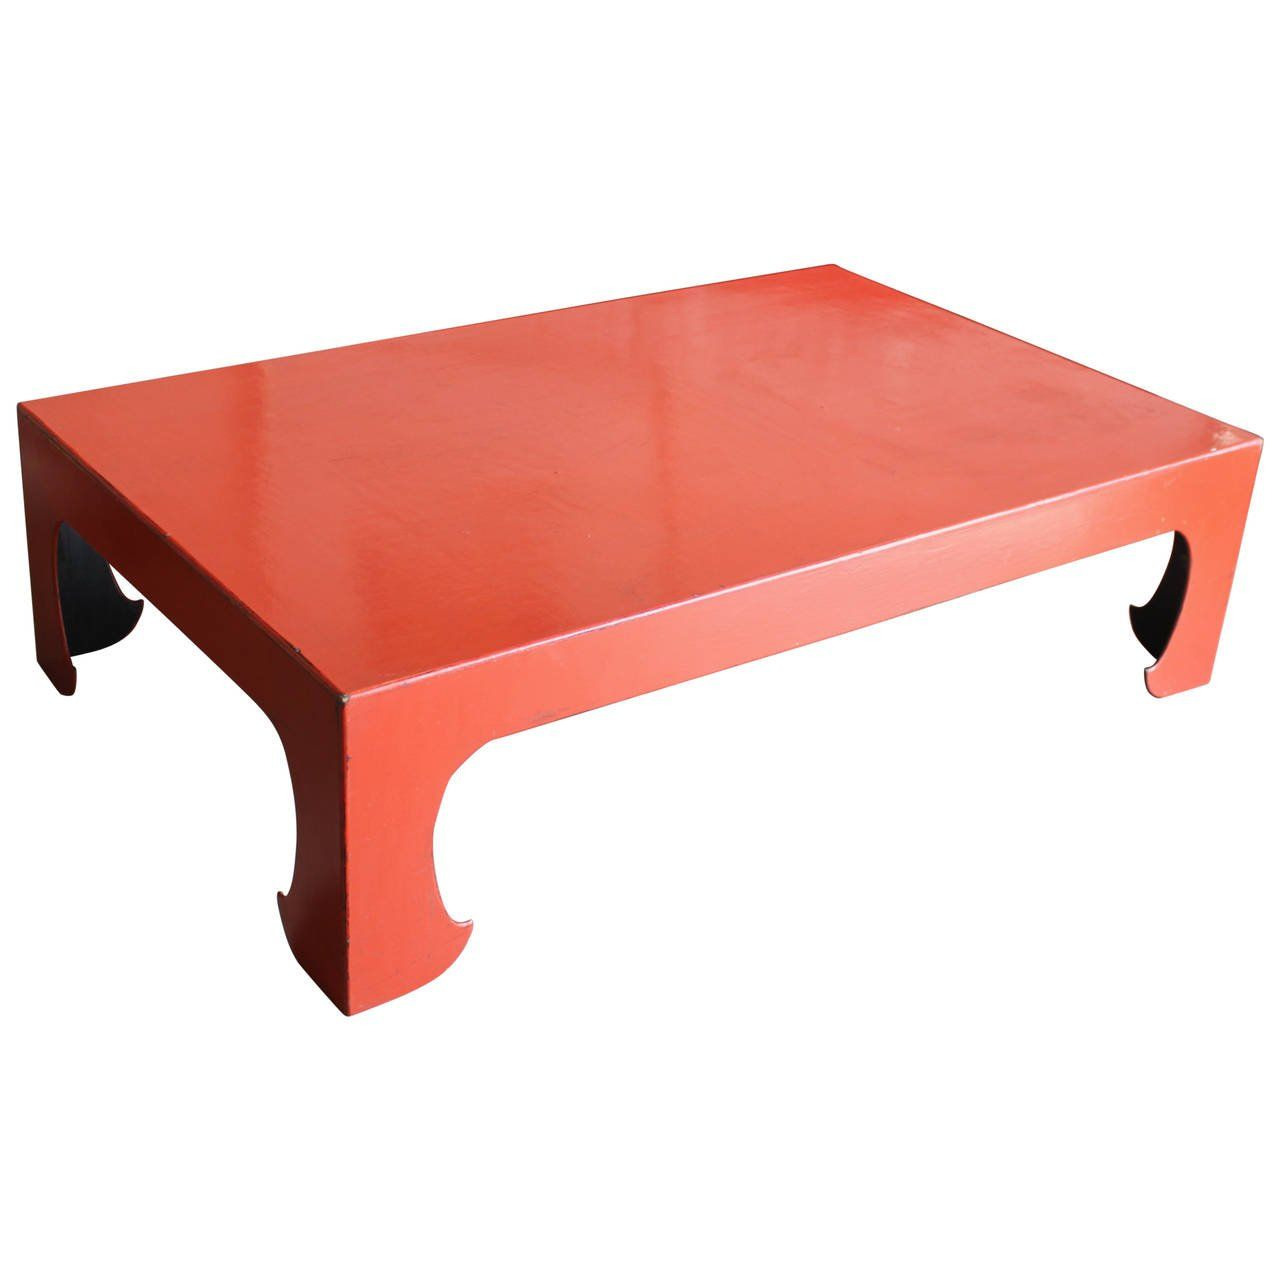 Ordinaire Vintage Red Coral Lacquered Chinese Coffee Table 1